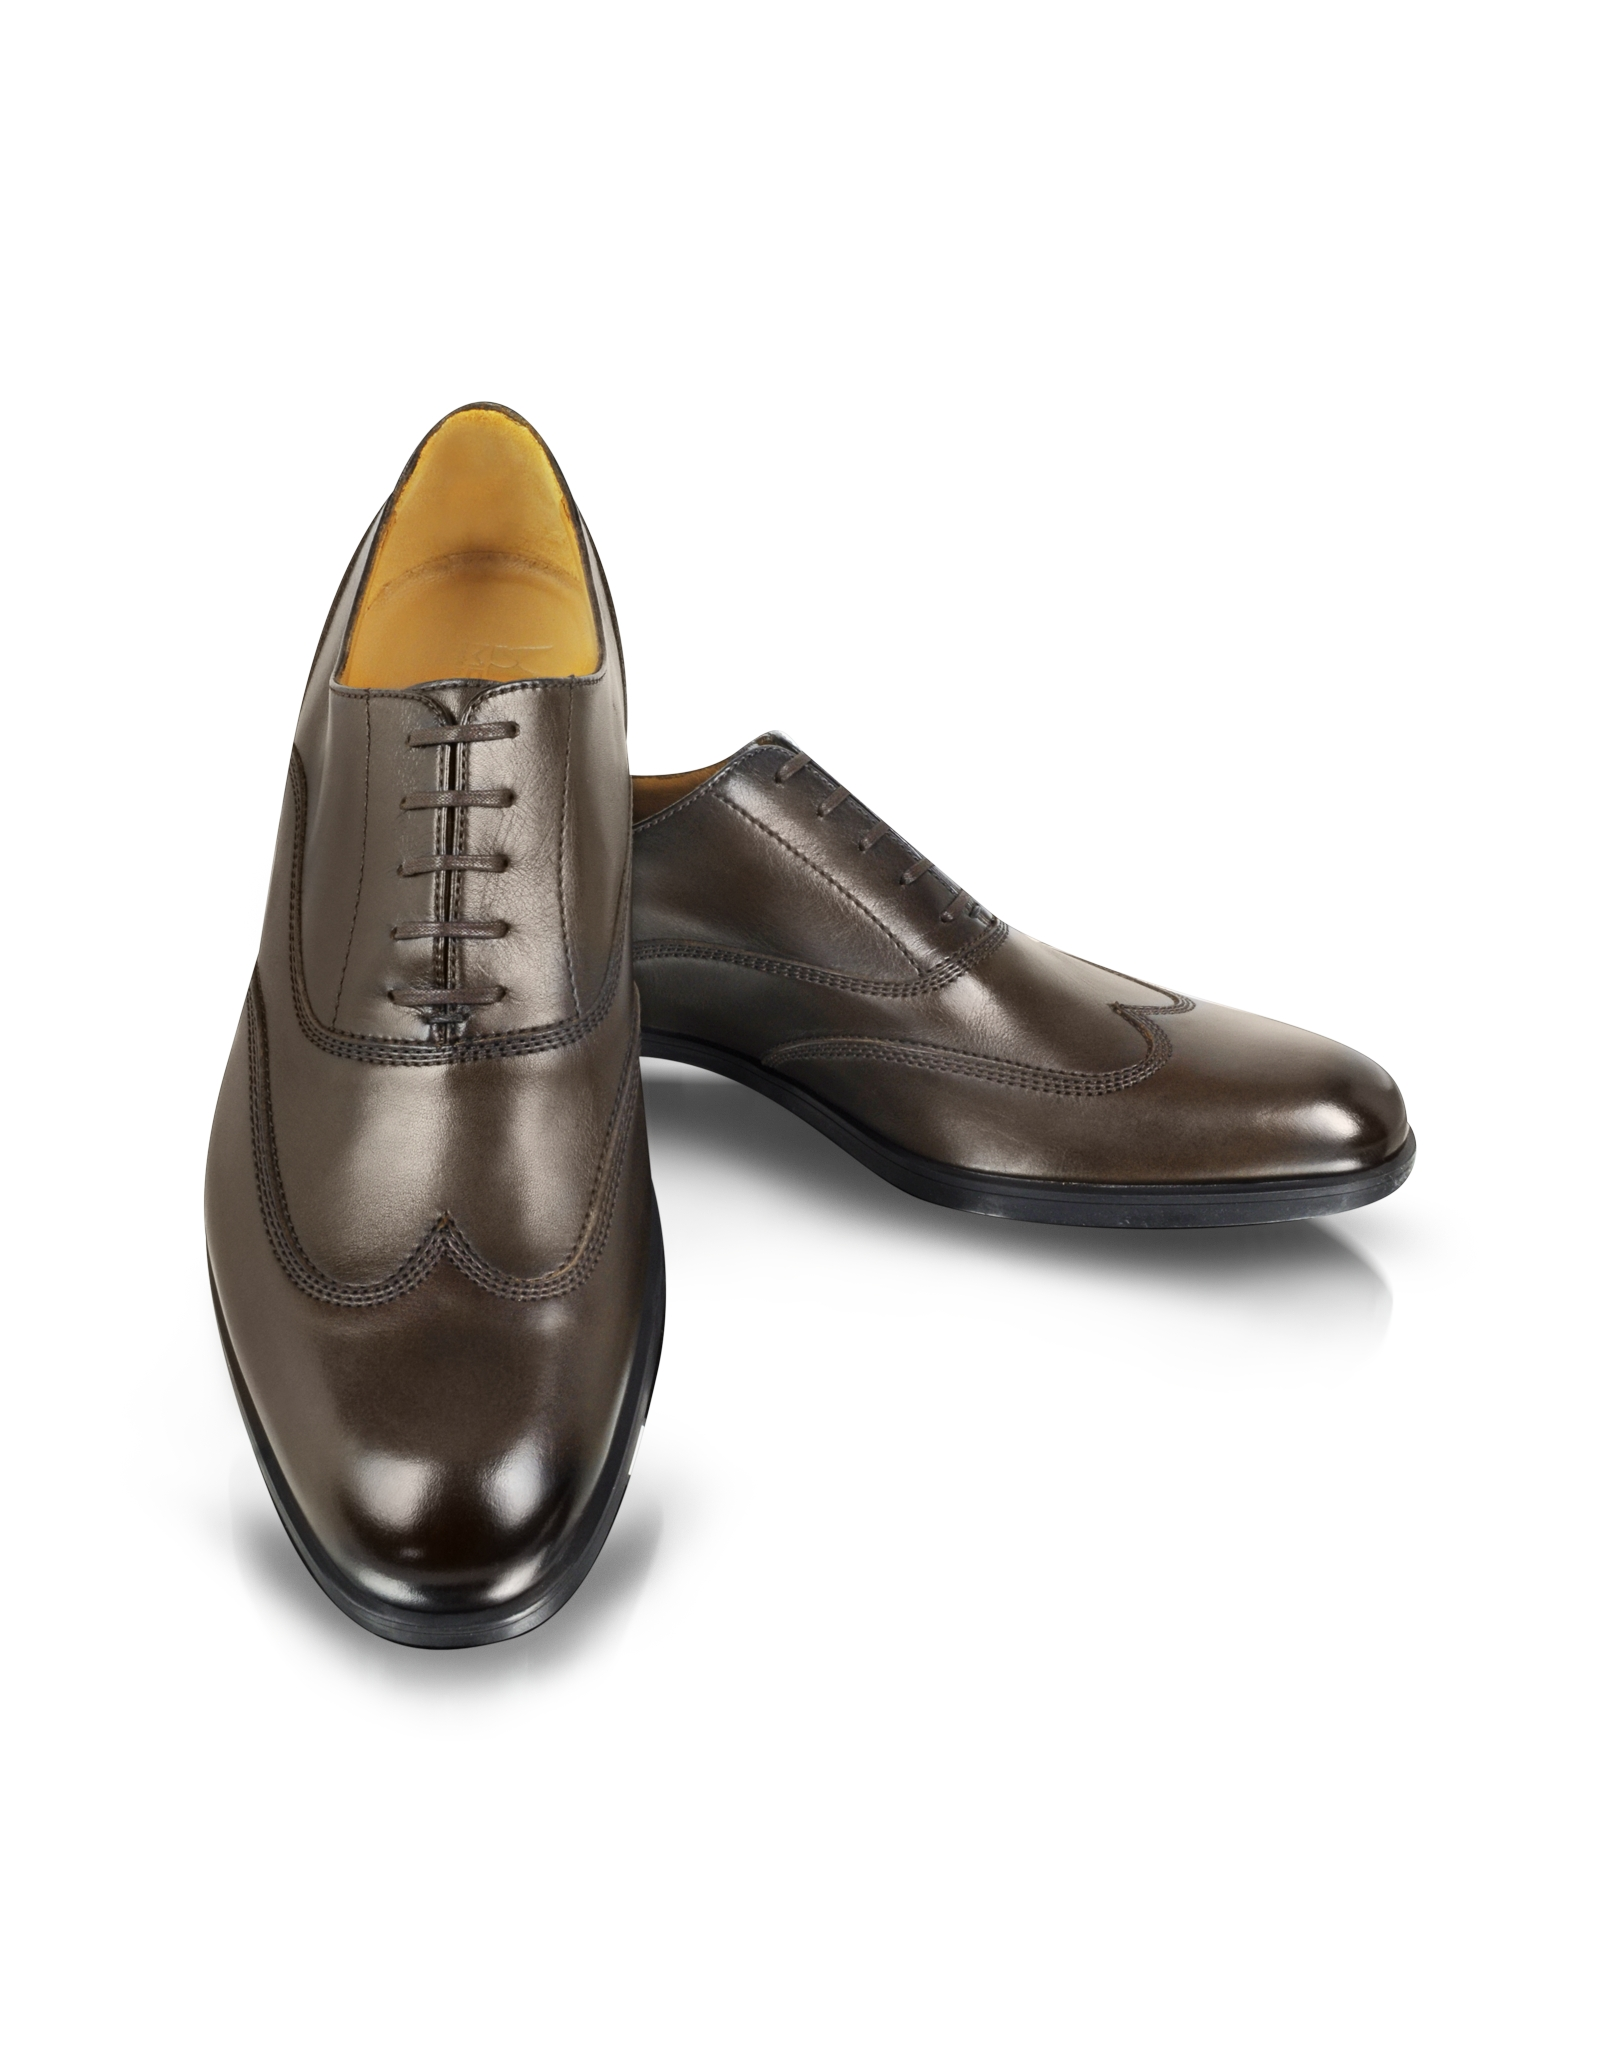 Preferred Lyst - Moreschi Brunei Brown Leather Wingtip Oxford Shoes in Brown  RT53